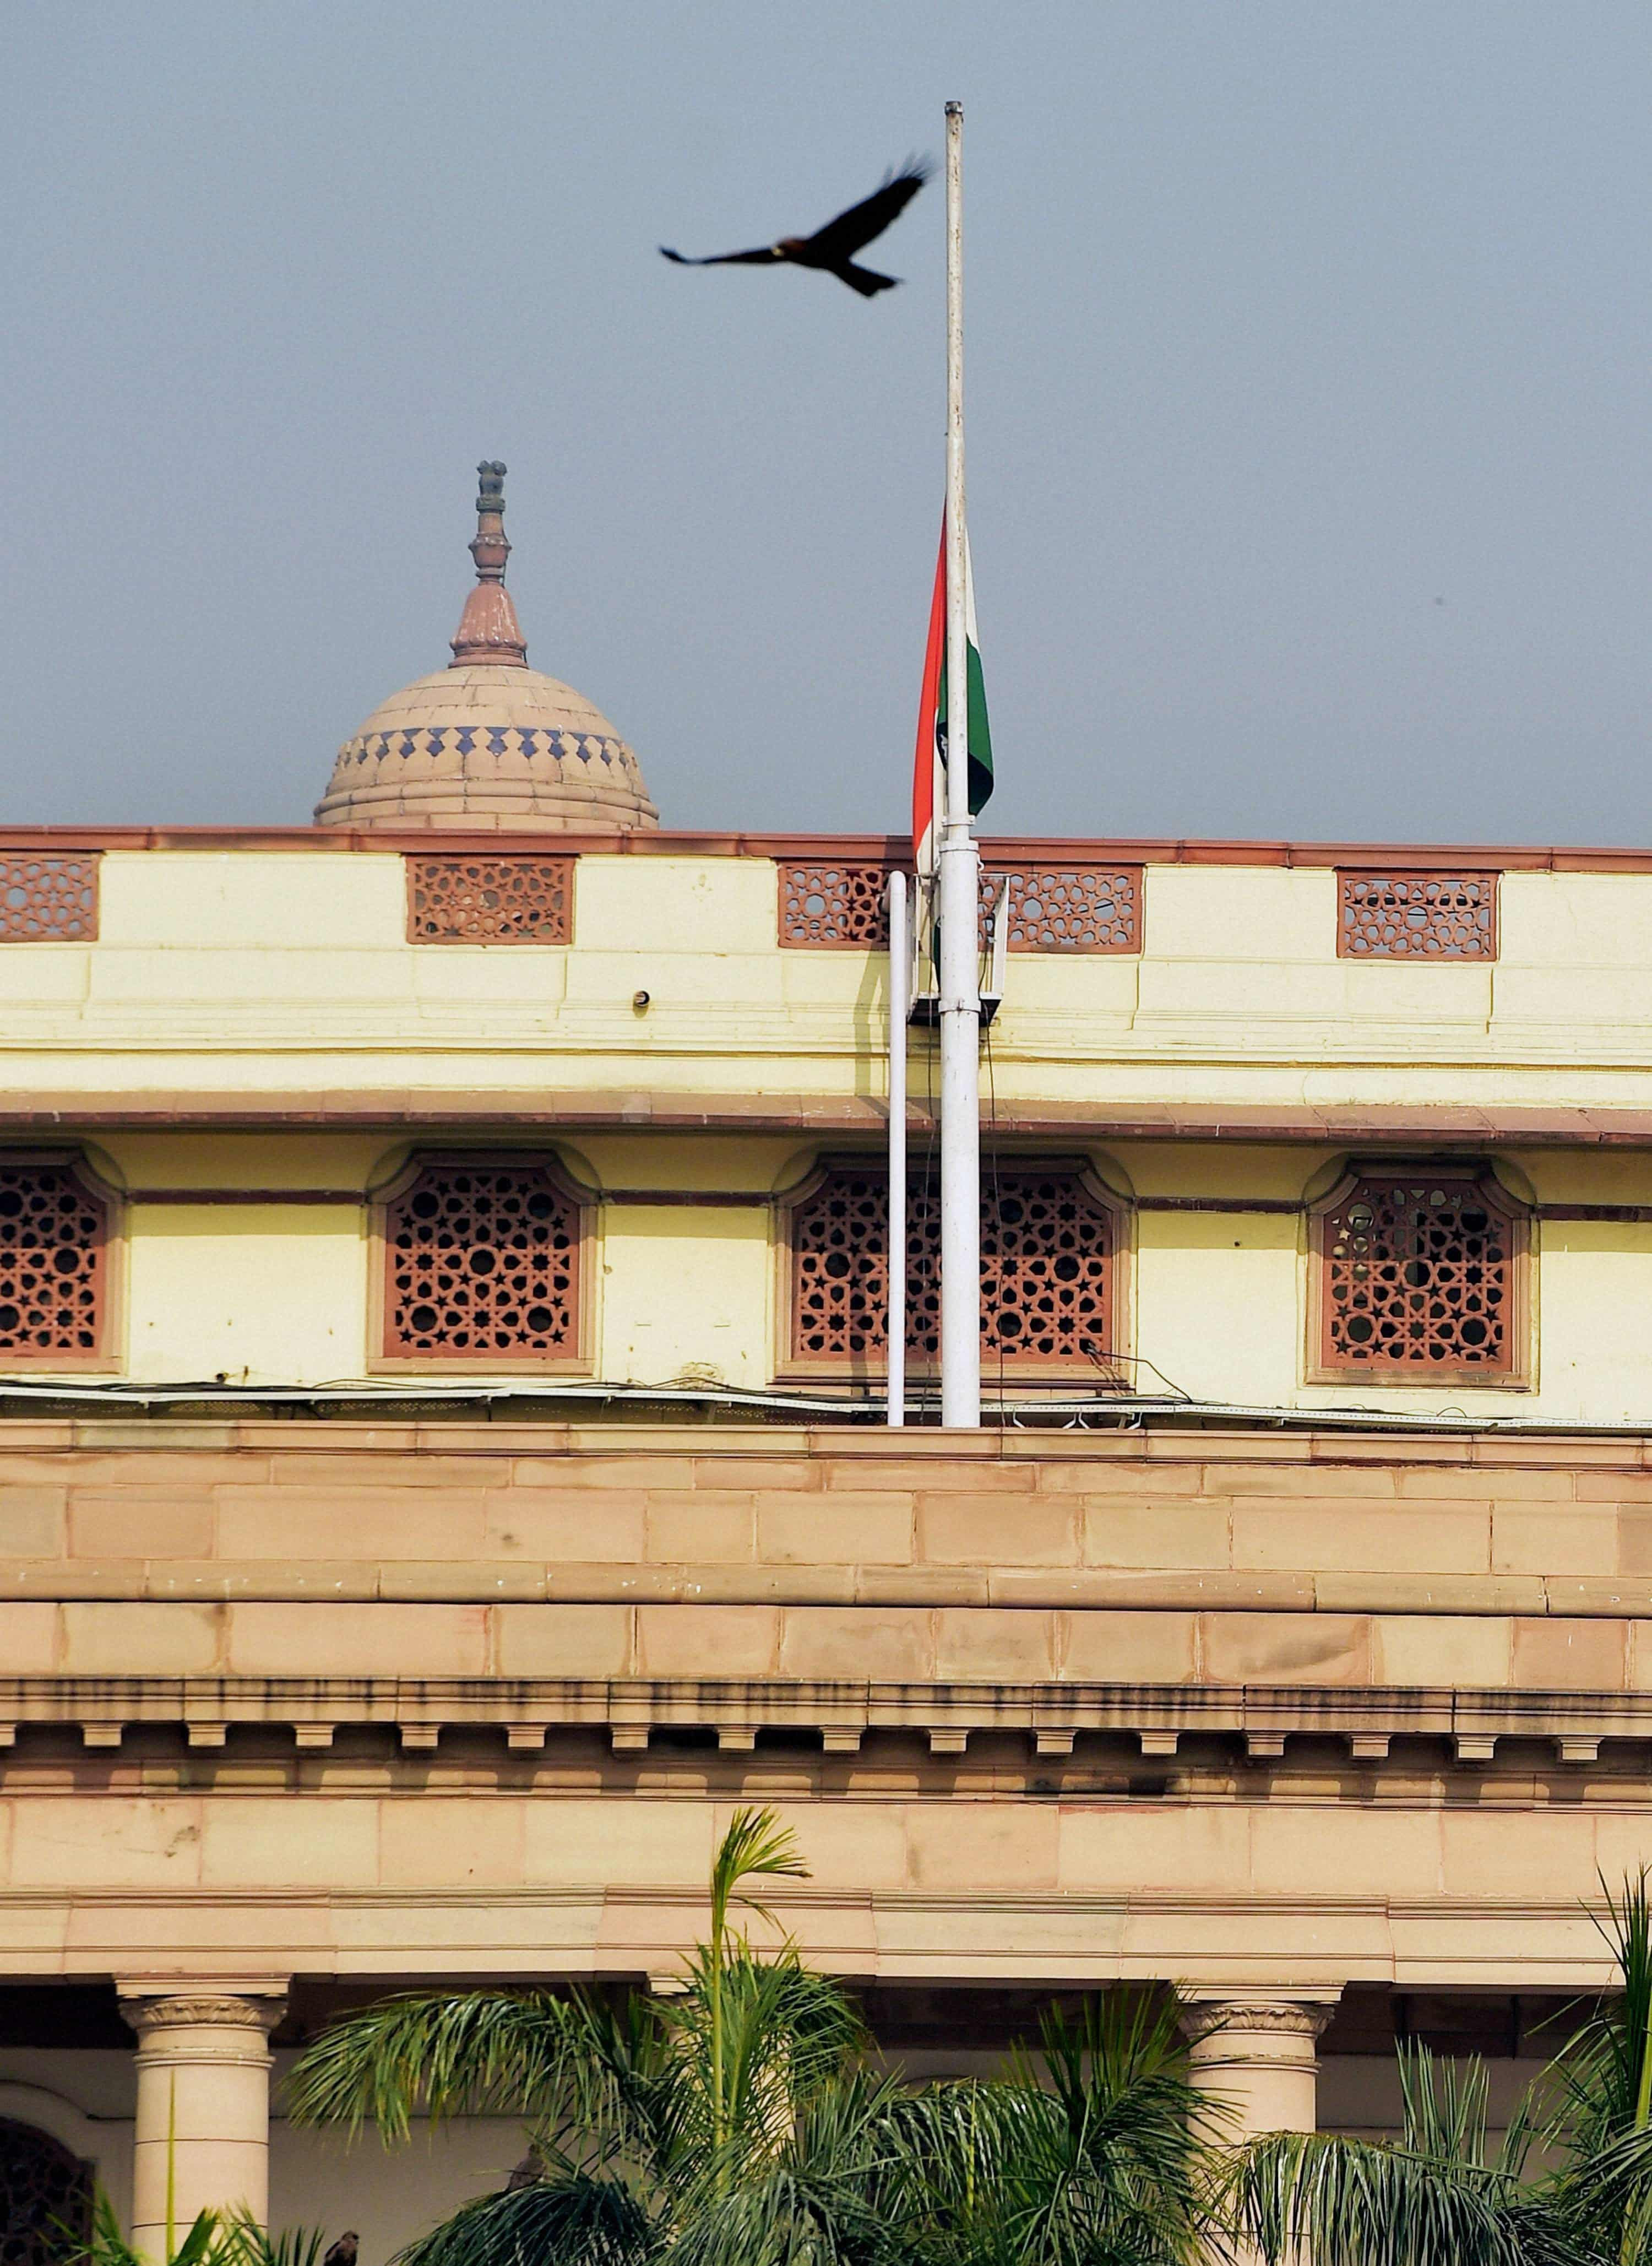 The Indian flag flies at half-mast.